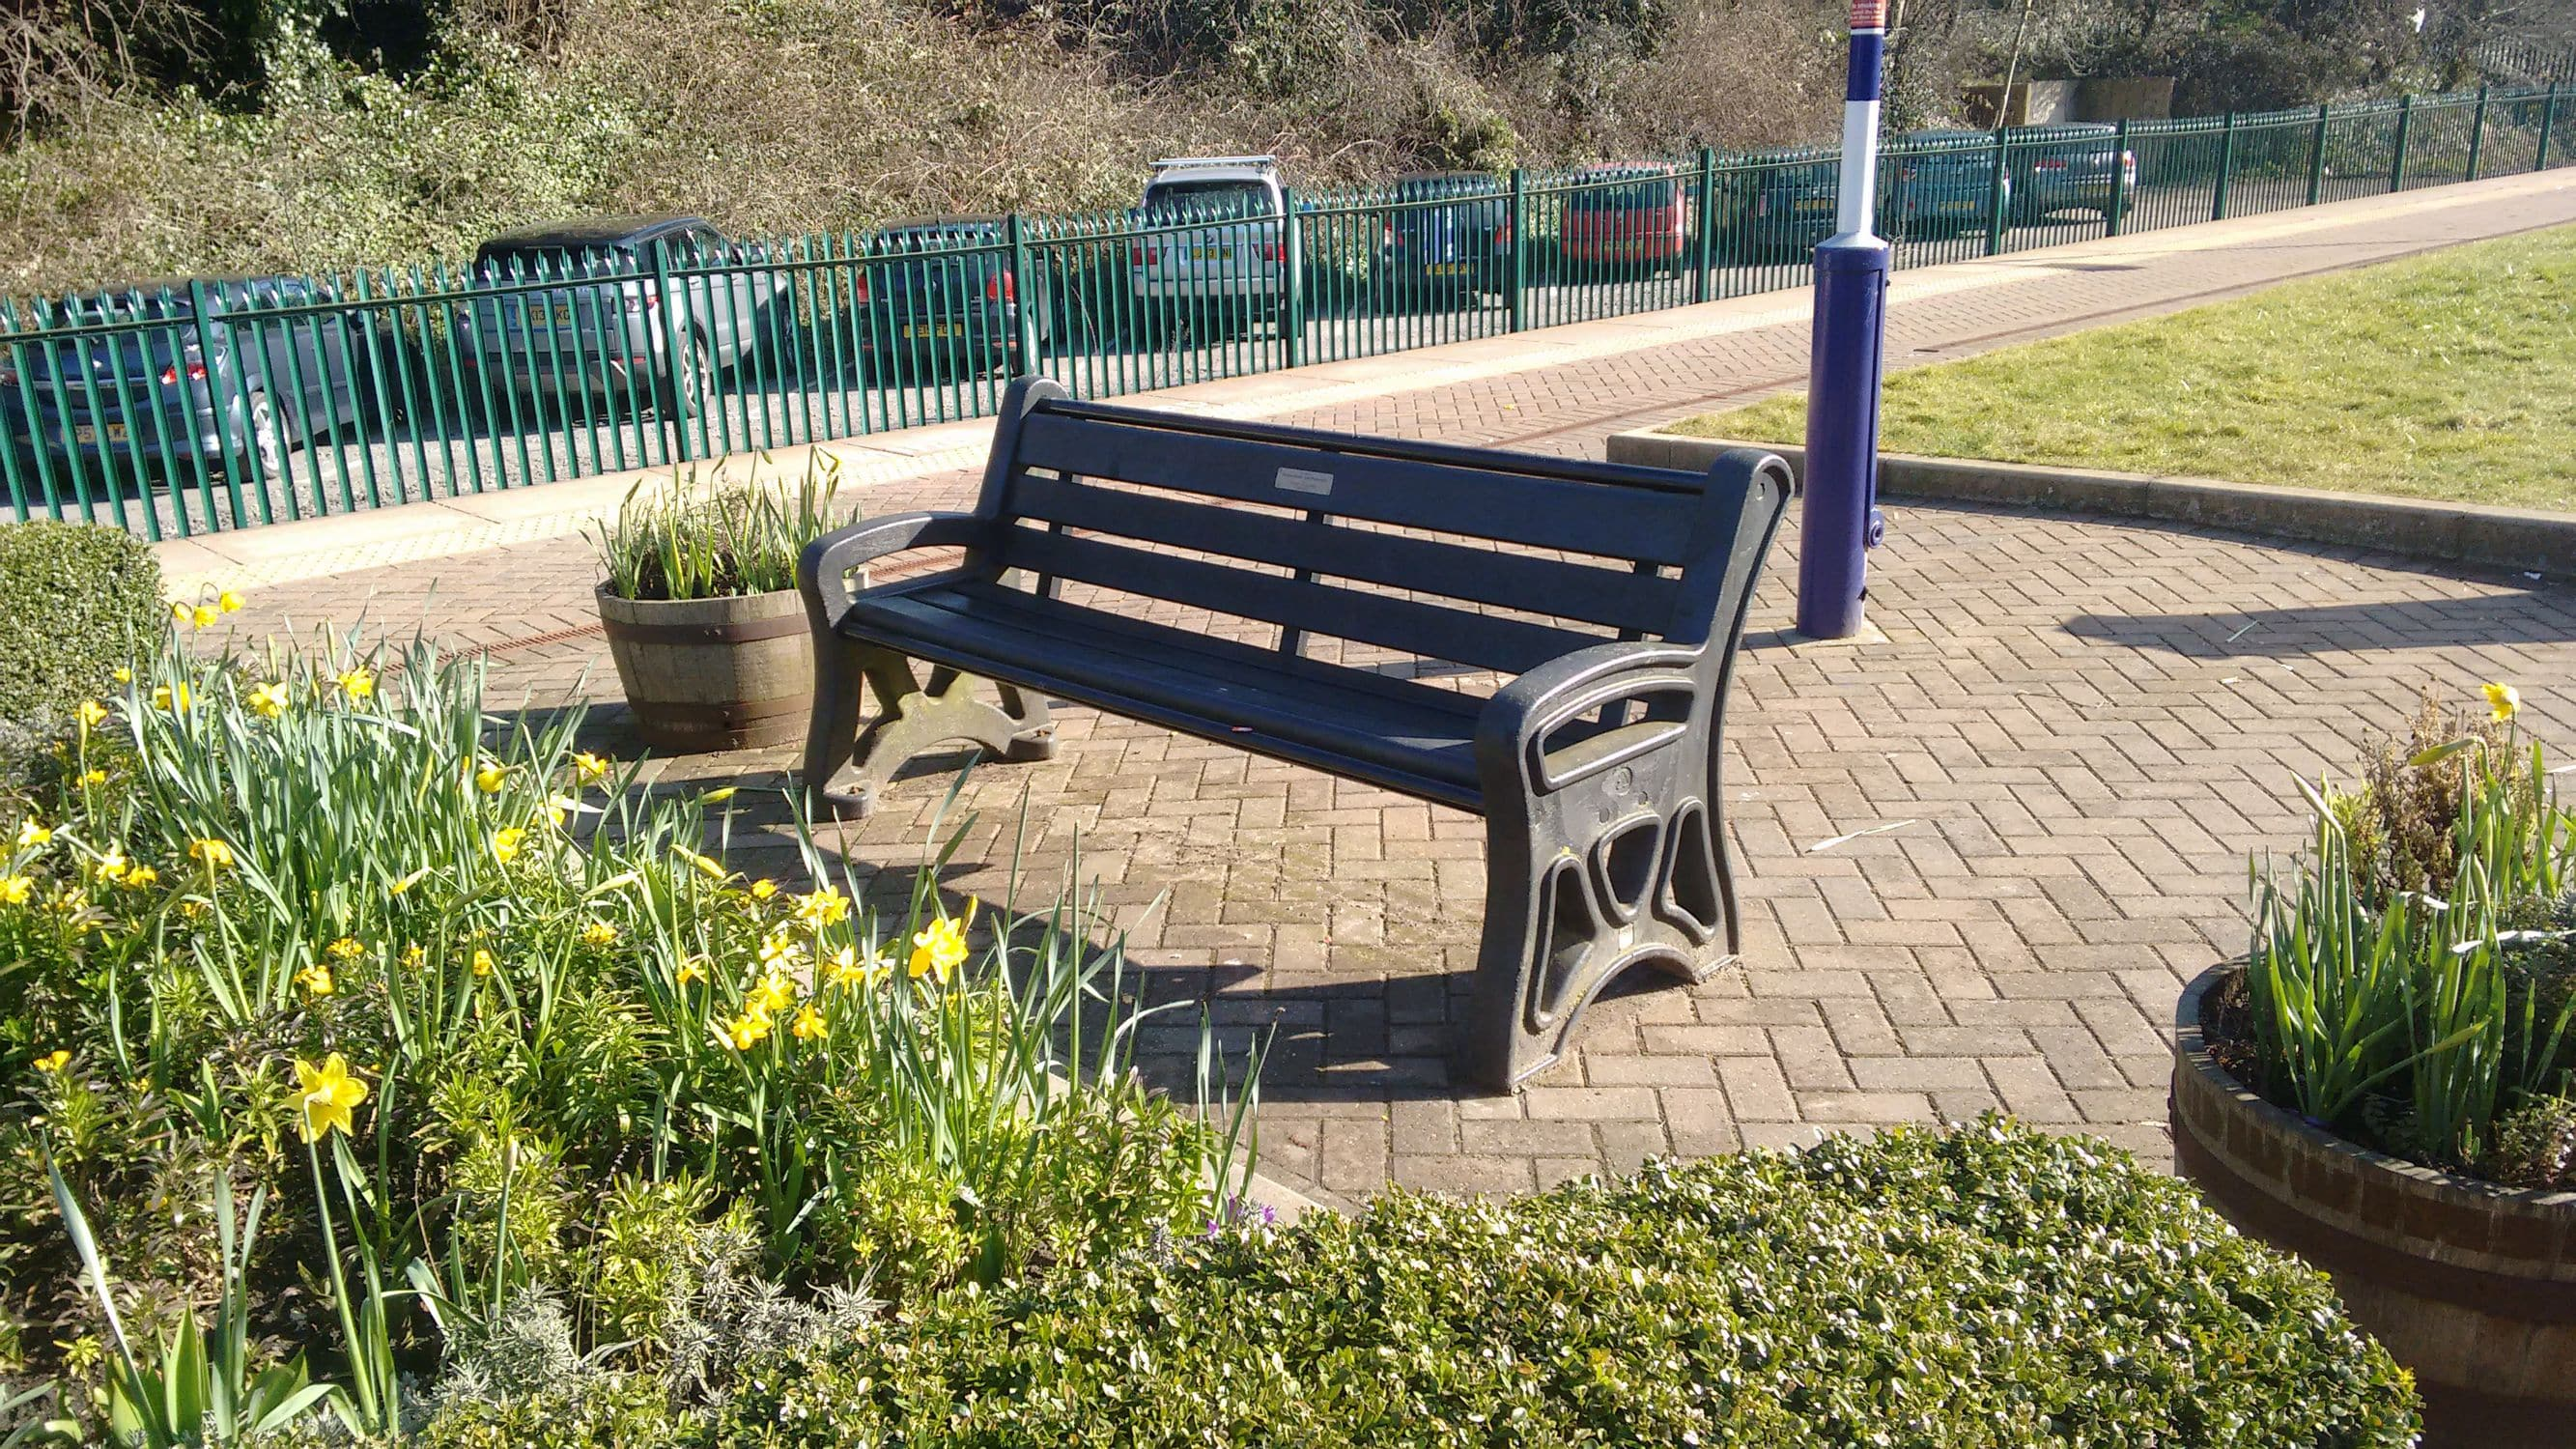 plastic use for recycled replas bench benches furniture kingfisher product outdoor products